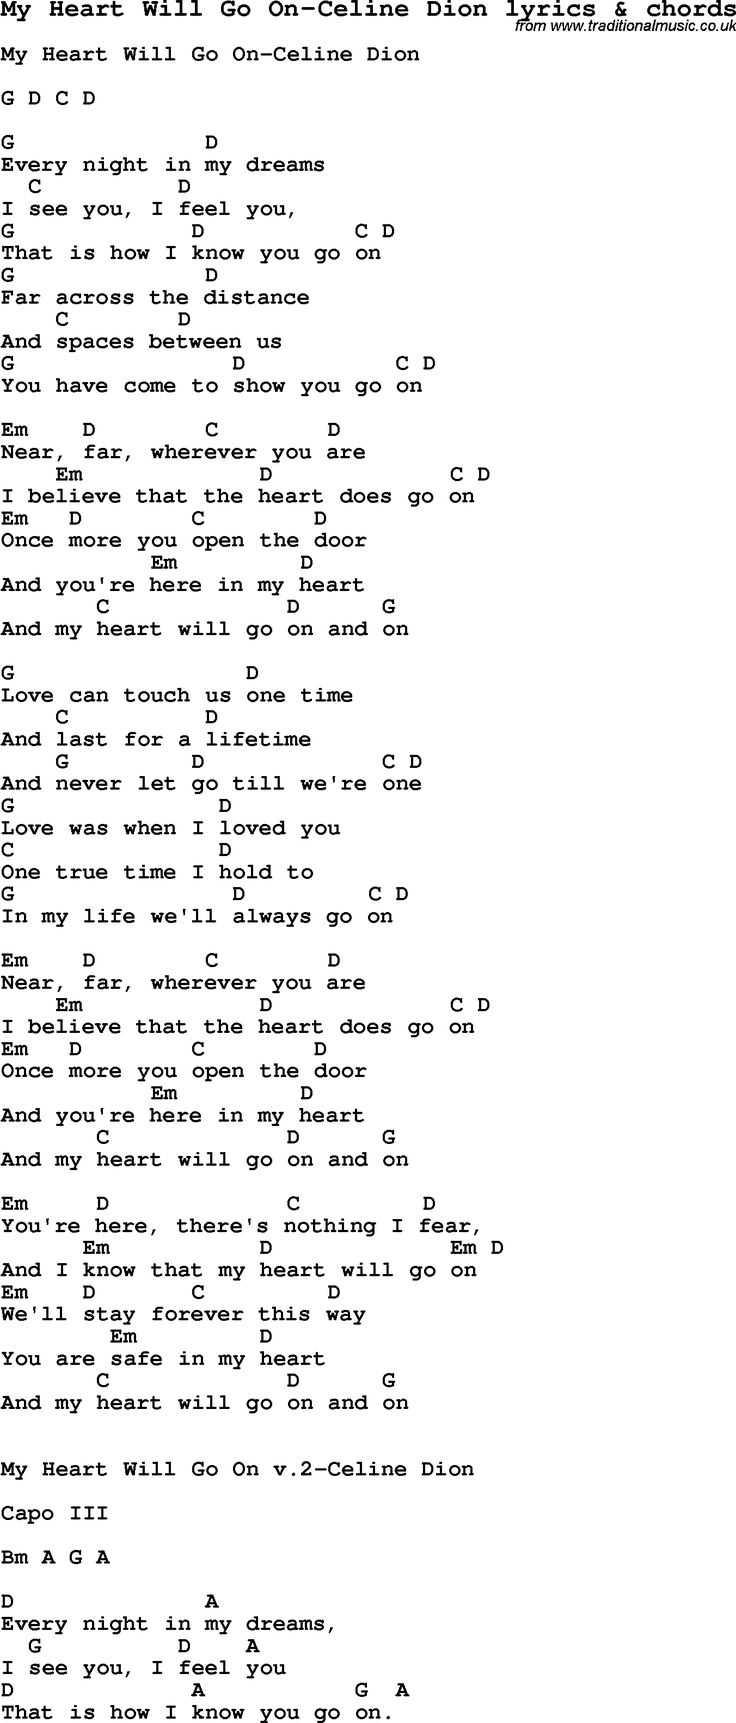 Love Song Lyrics for My Heart Will Go On Celine Dion with chords ...